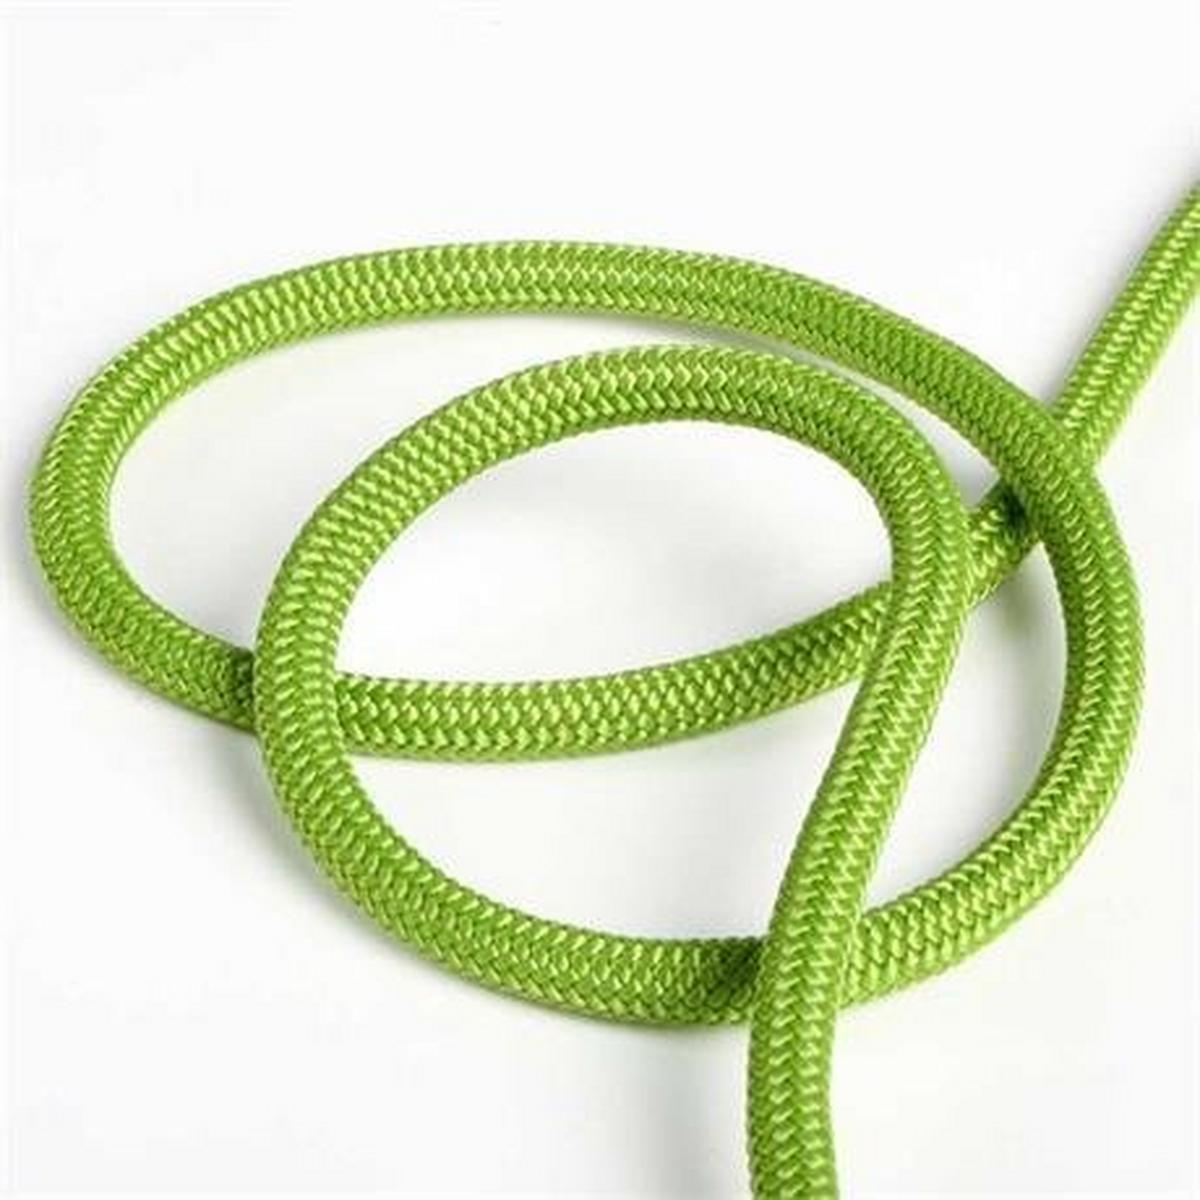 Edelweis s Ropes Accessory Cord 6mm Lime